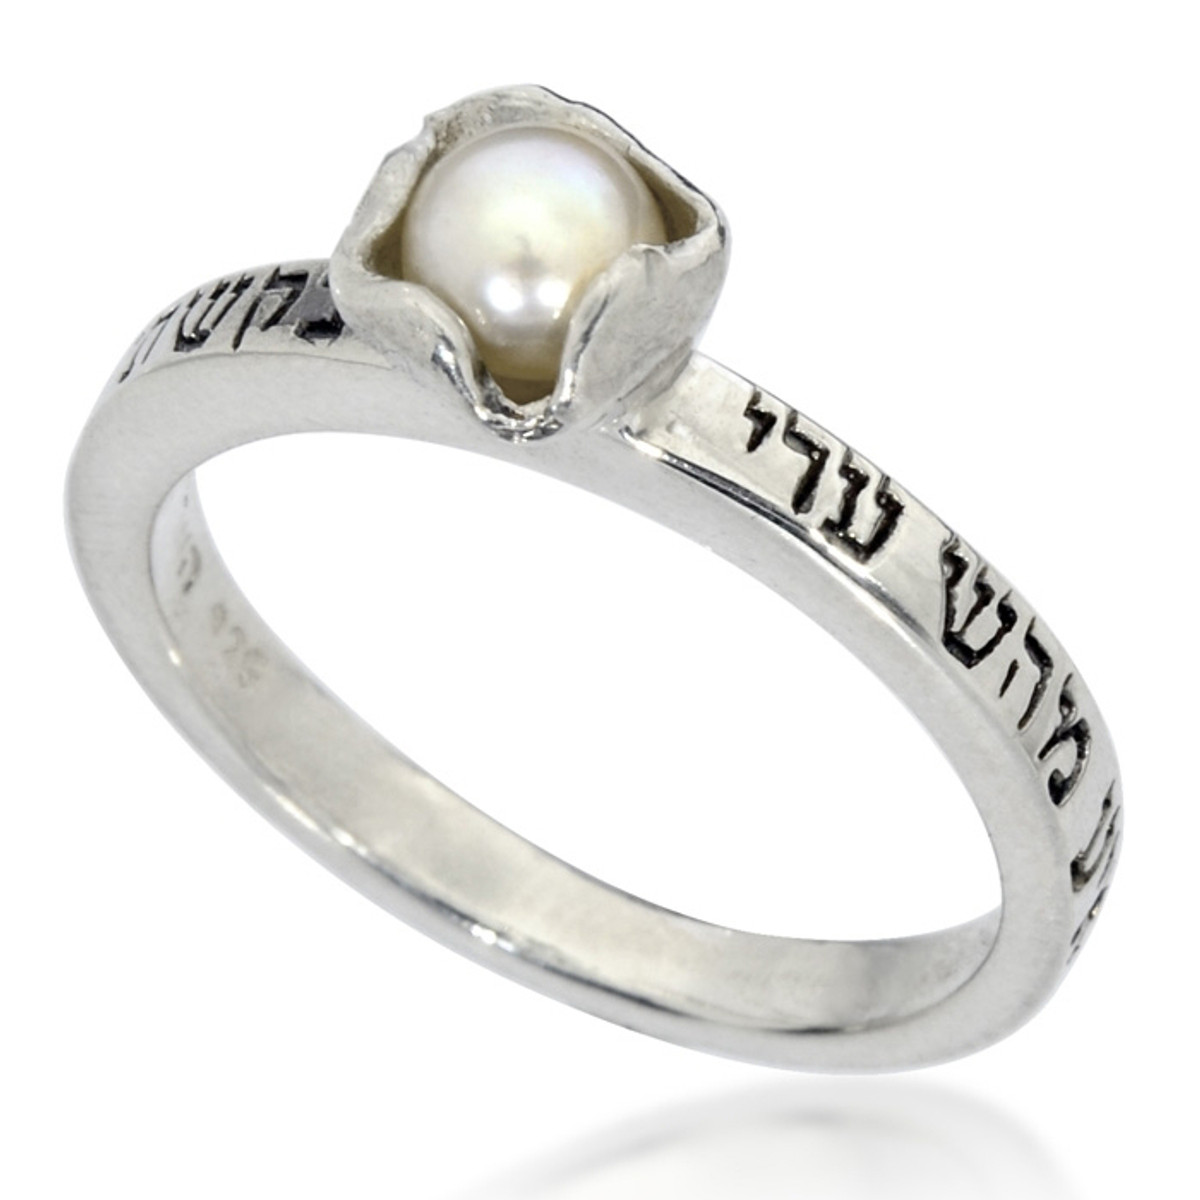 Silver HaAri Kabbalah Ring for Love and Blessing  ring by Haari Kabbalah Jewelry